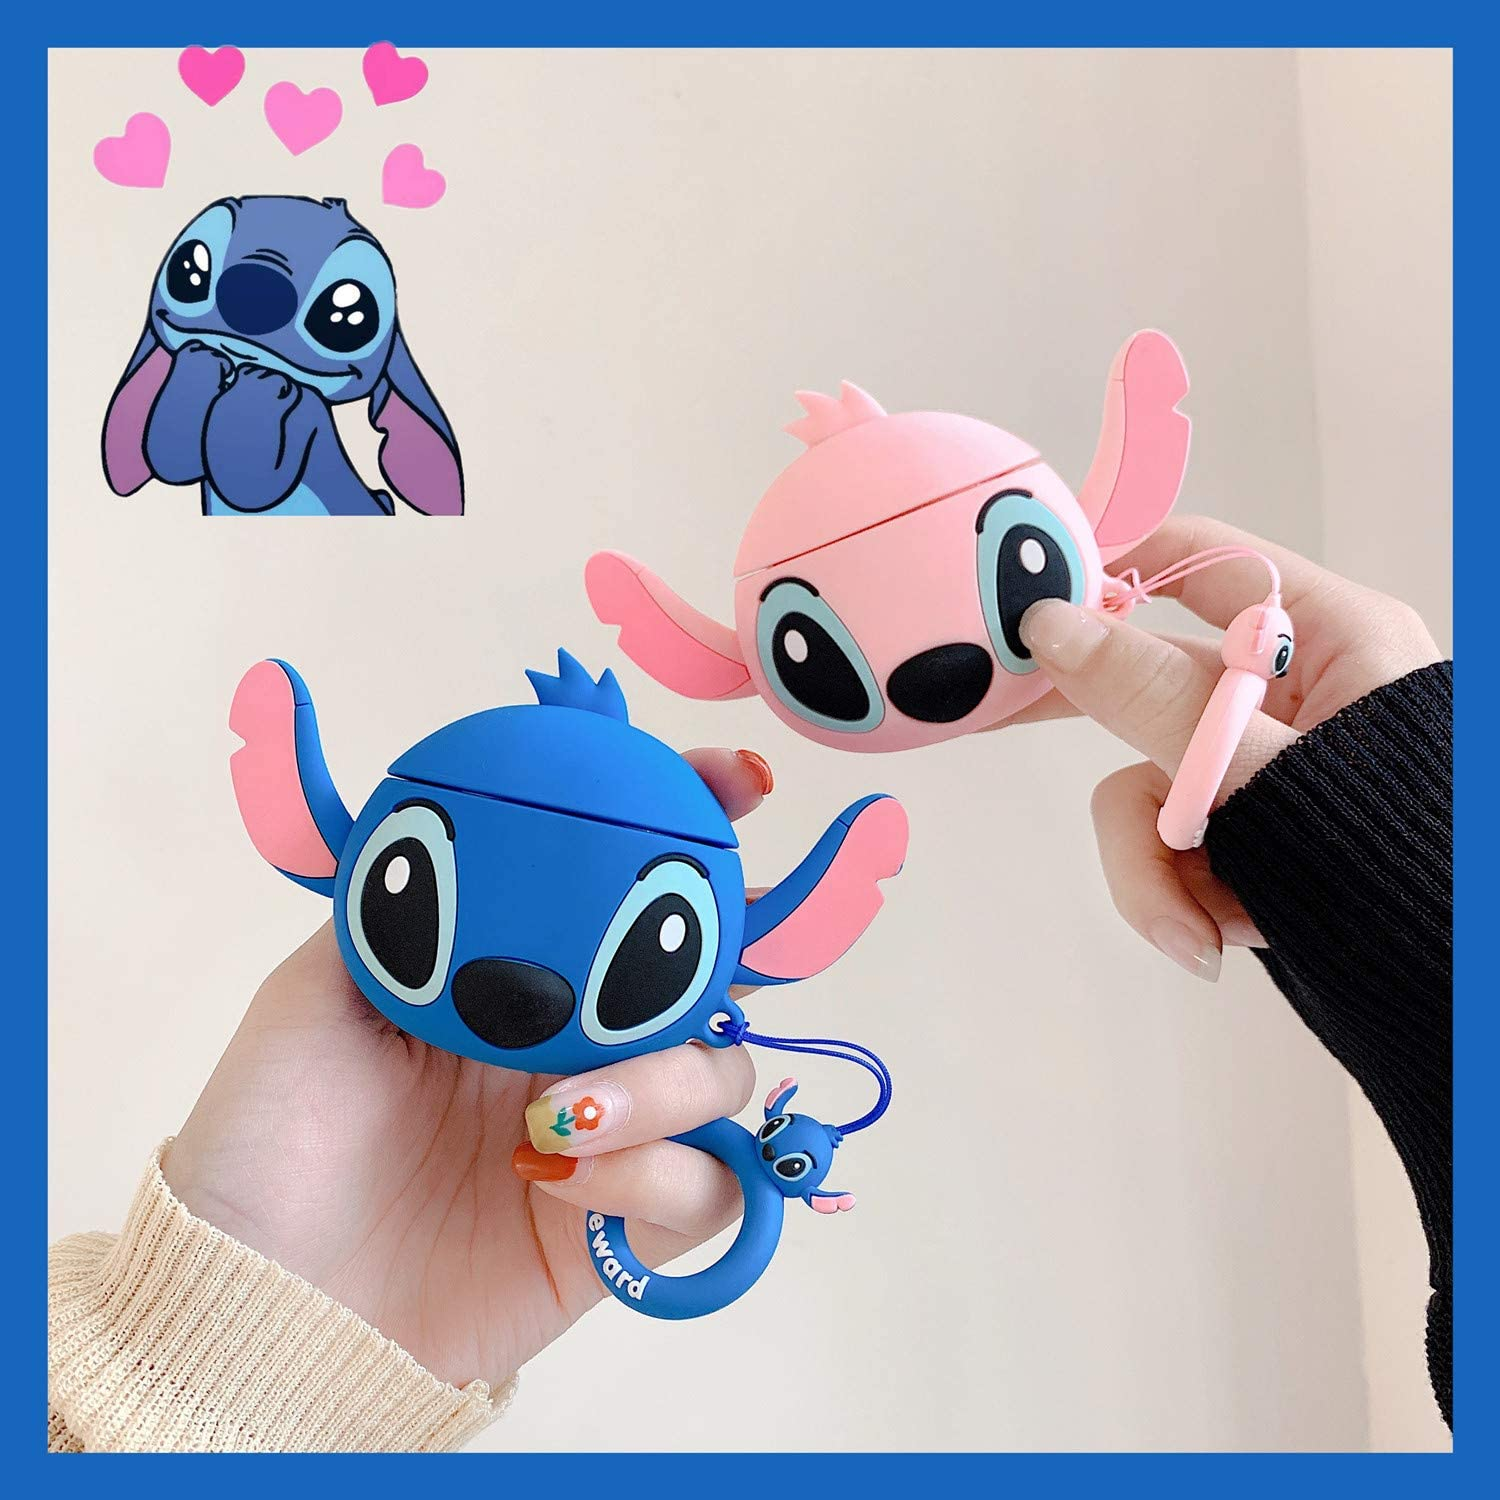 Ear Blue Stitch Lalakaka Compatible with Airpods 1//2 Cute Case,Cartoon Character Silicone Animal Airpod Designer Skin Kawaii Funny Fun Cool Ring Design Cover Kids Teens Air pods Cases for Girls Boys